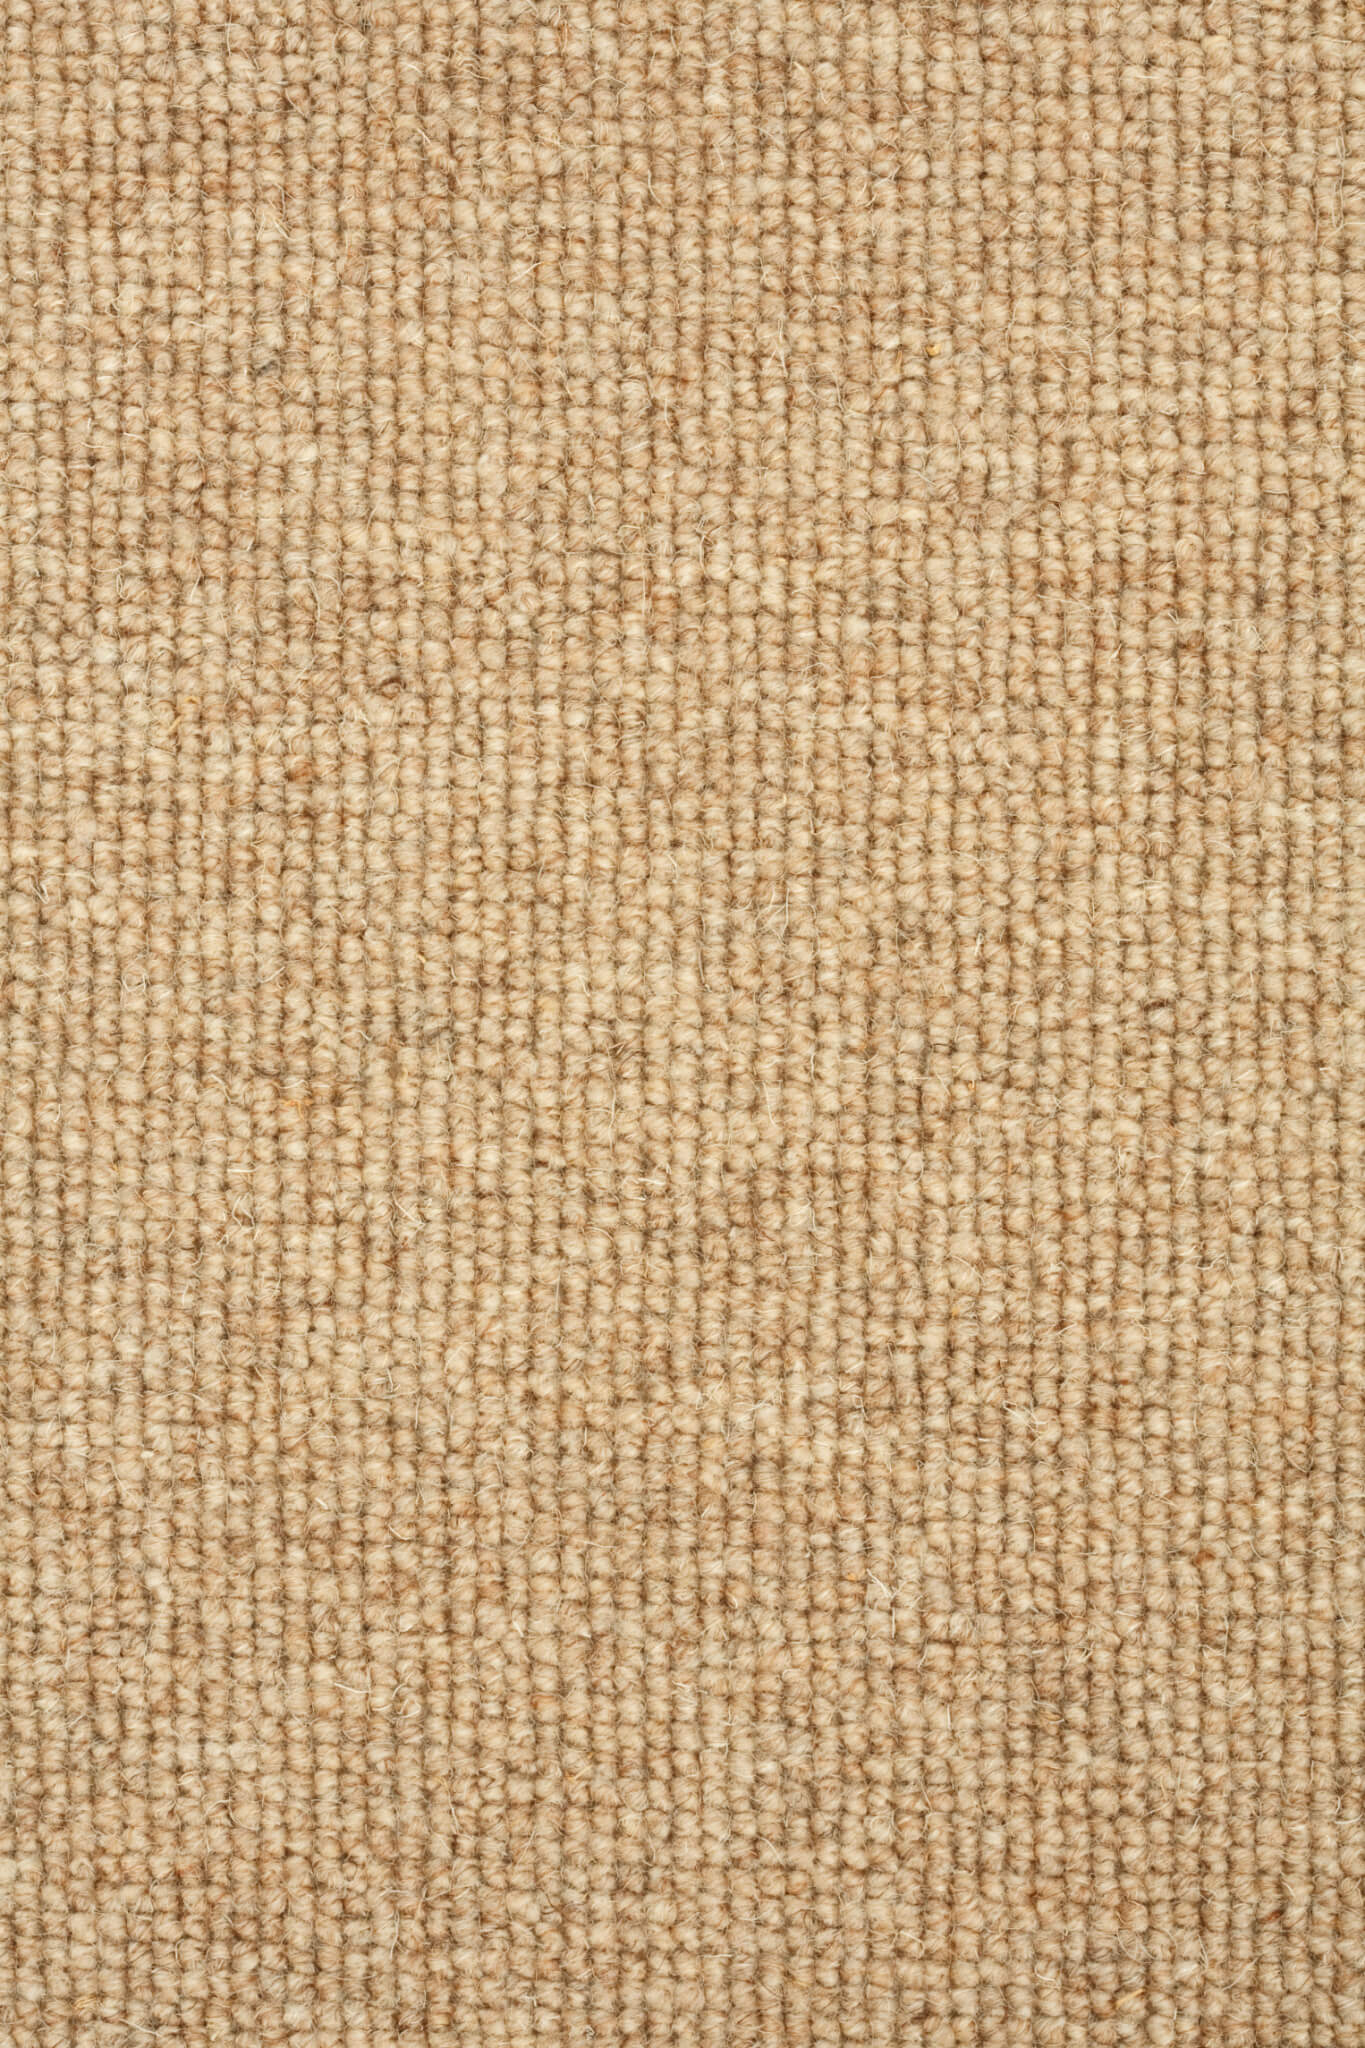 Detail of a neutral colored loop pile carpet - Carpet Gallery